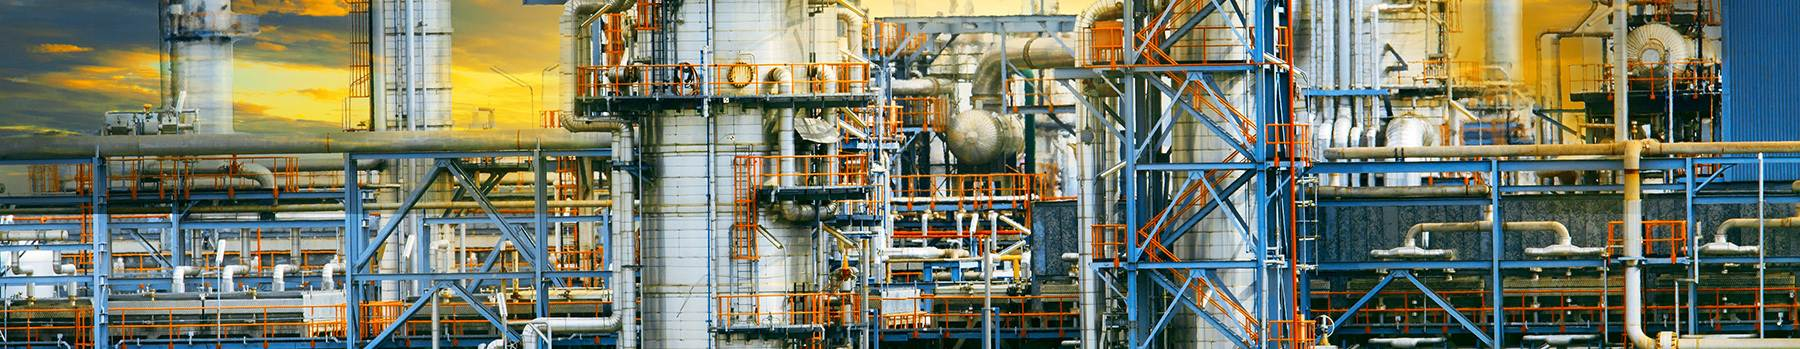 hero-ConstructSim_iSt_47958012_XL_exterior-structure-of-oil-refinery-plant-in-industry-estate